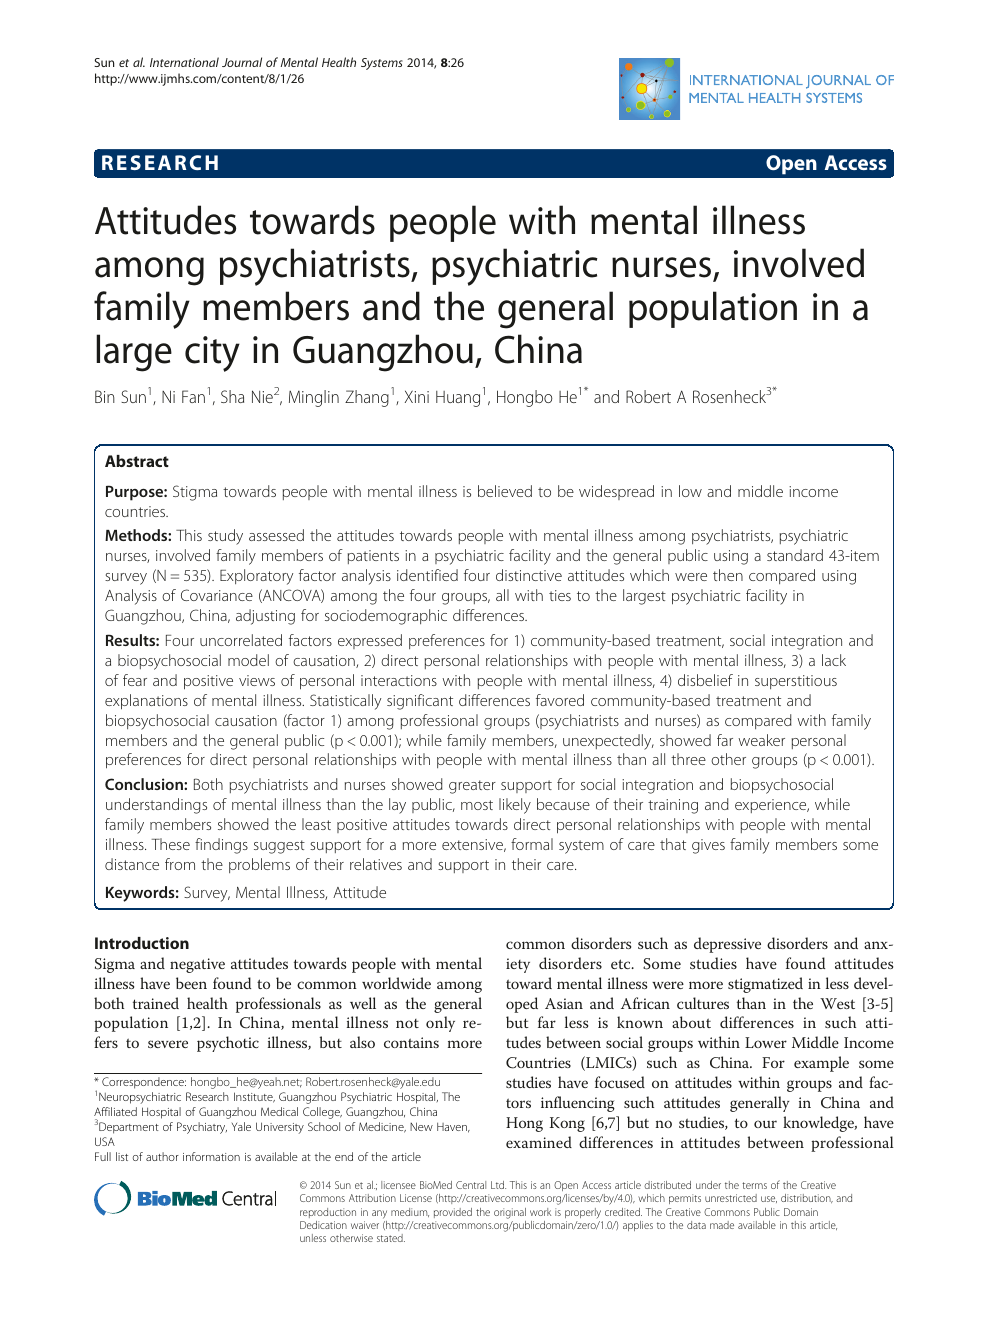 Attitudes towards people with mental illness among